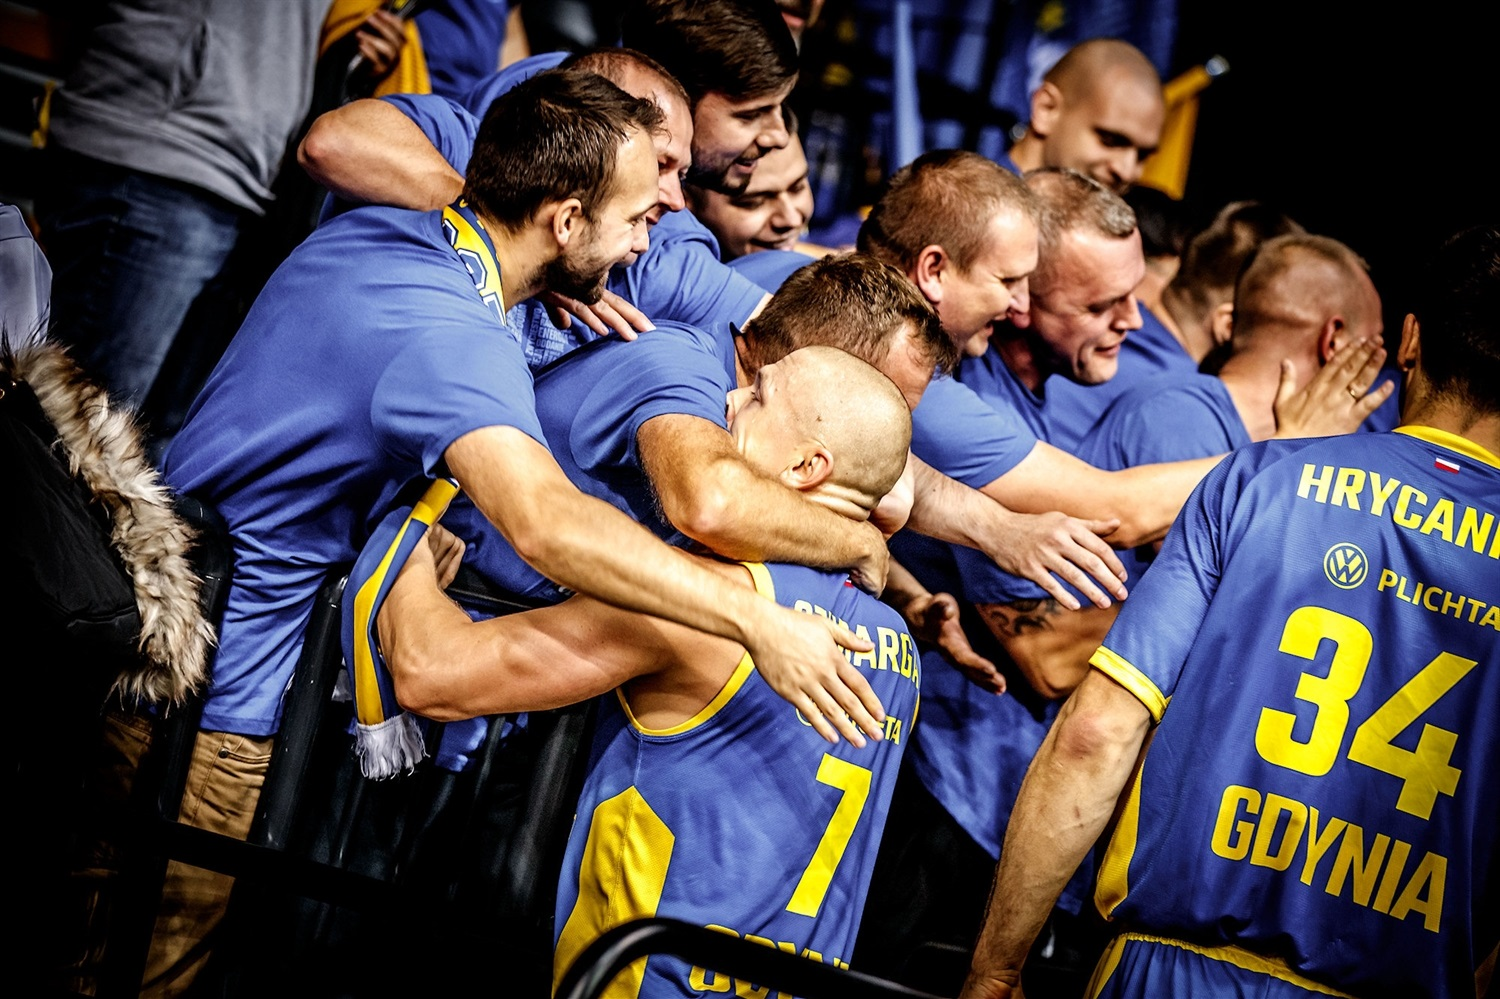 Fans and players celebrates - Asseco Arka Gdynia (photo Ulf Duda - fotoduda.de) - EC19